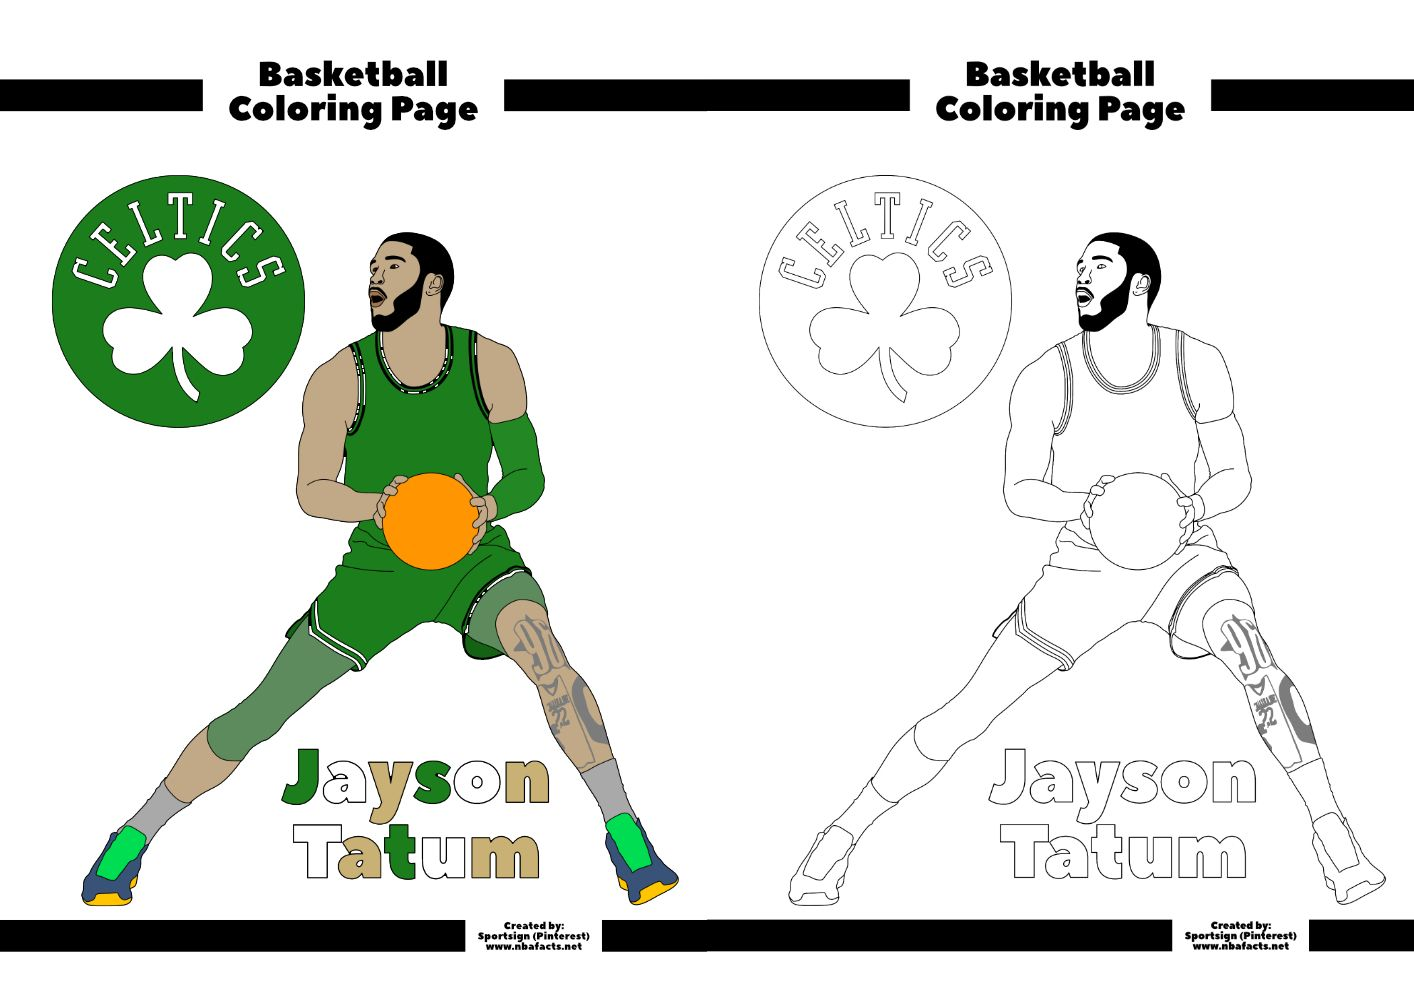 Free Nba Coloring Sheets In 2020 Coloring Pages Coloring Sheets